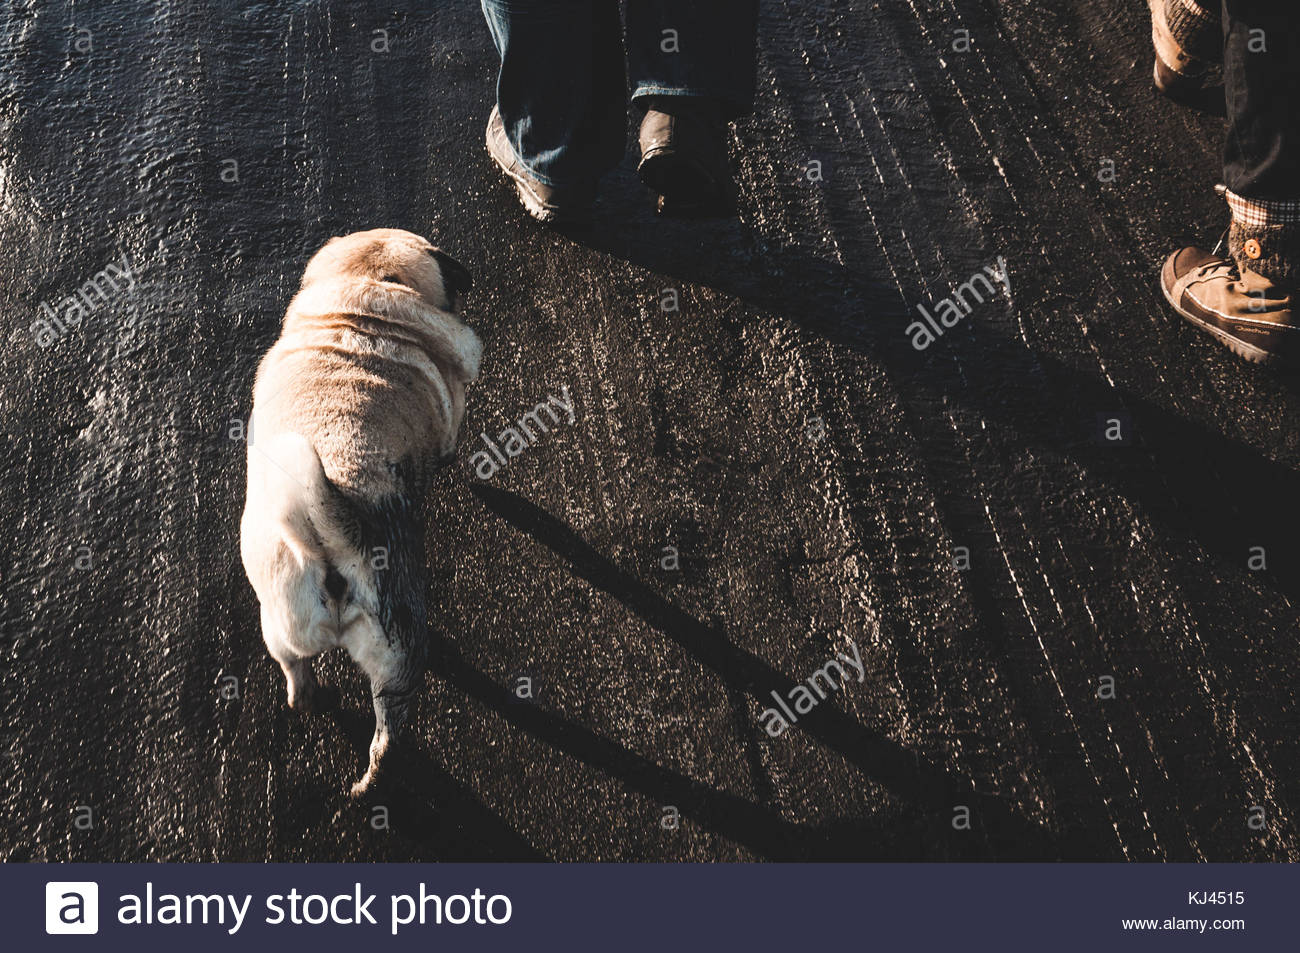 dog walking - Stock Image